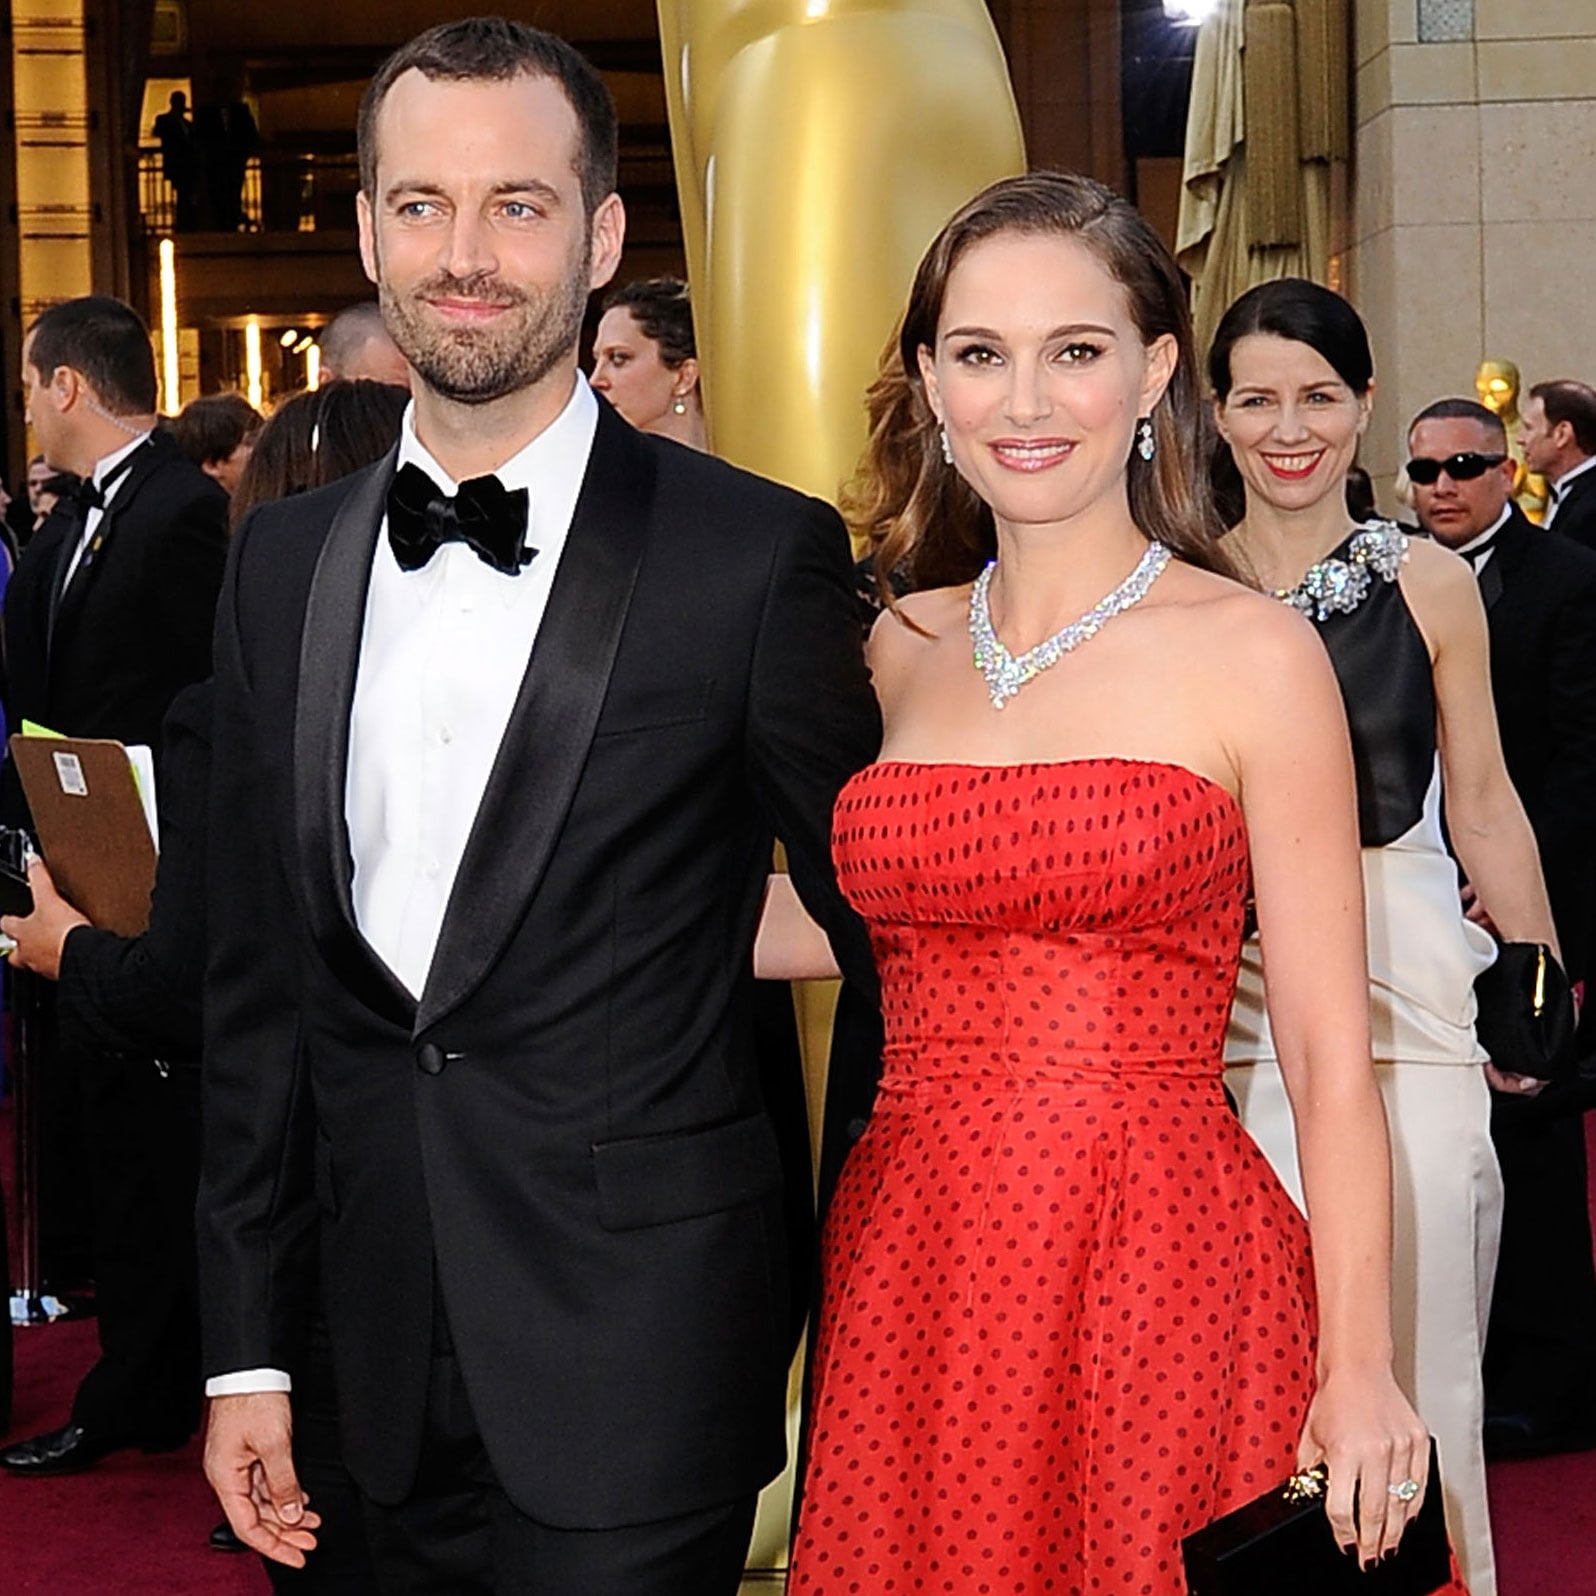 Natalie Portman married Benjamin Millepied wearing a Rodarte wedding dress